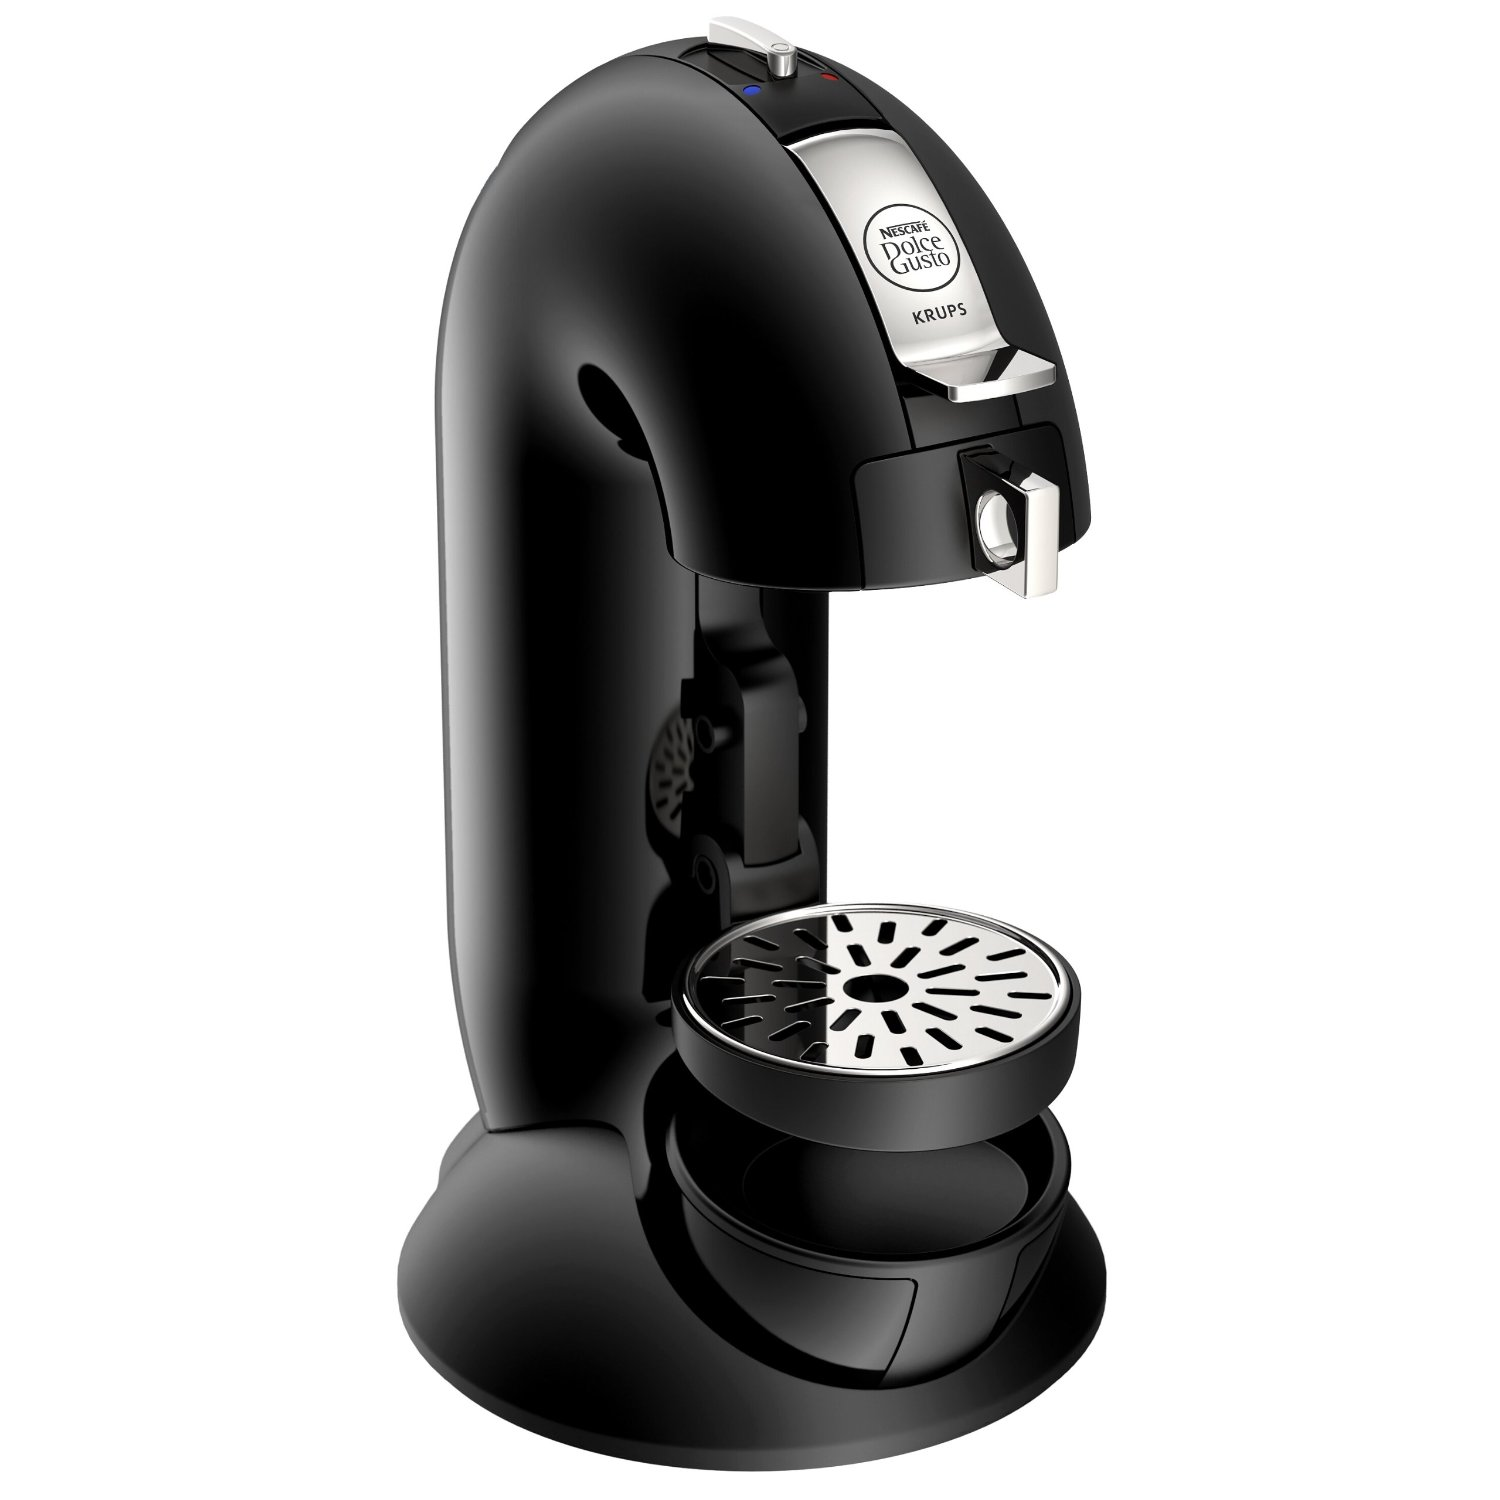 Krups Nescafe Dolce Gusto Coffee Maker 15 Bar Black Capsule Machine KP301040 eBay